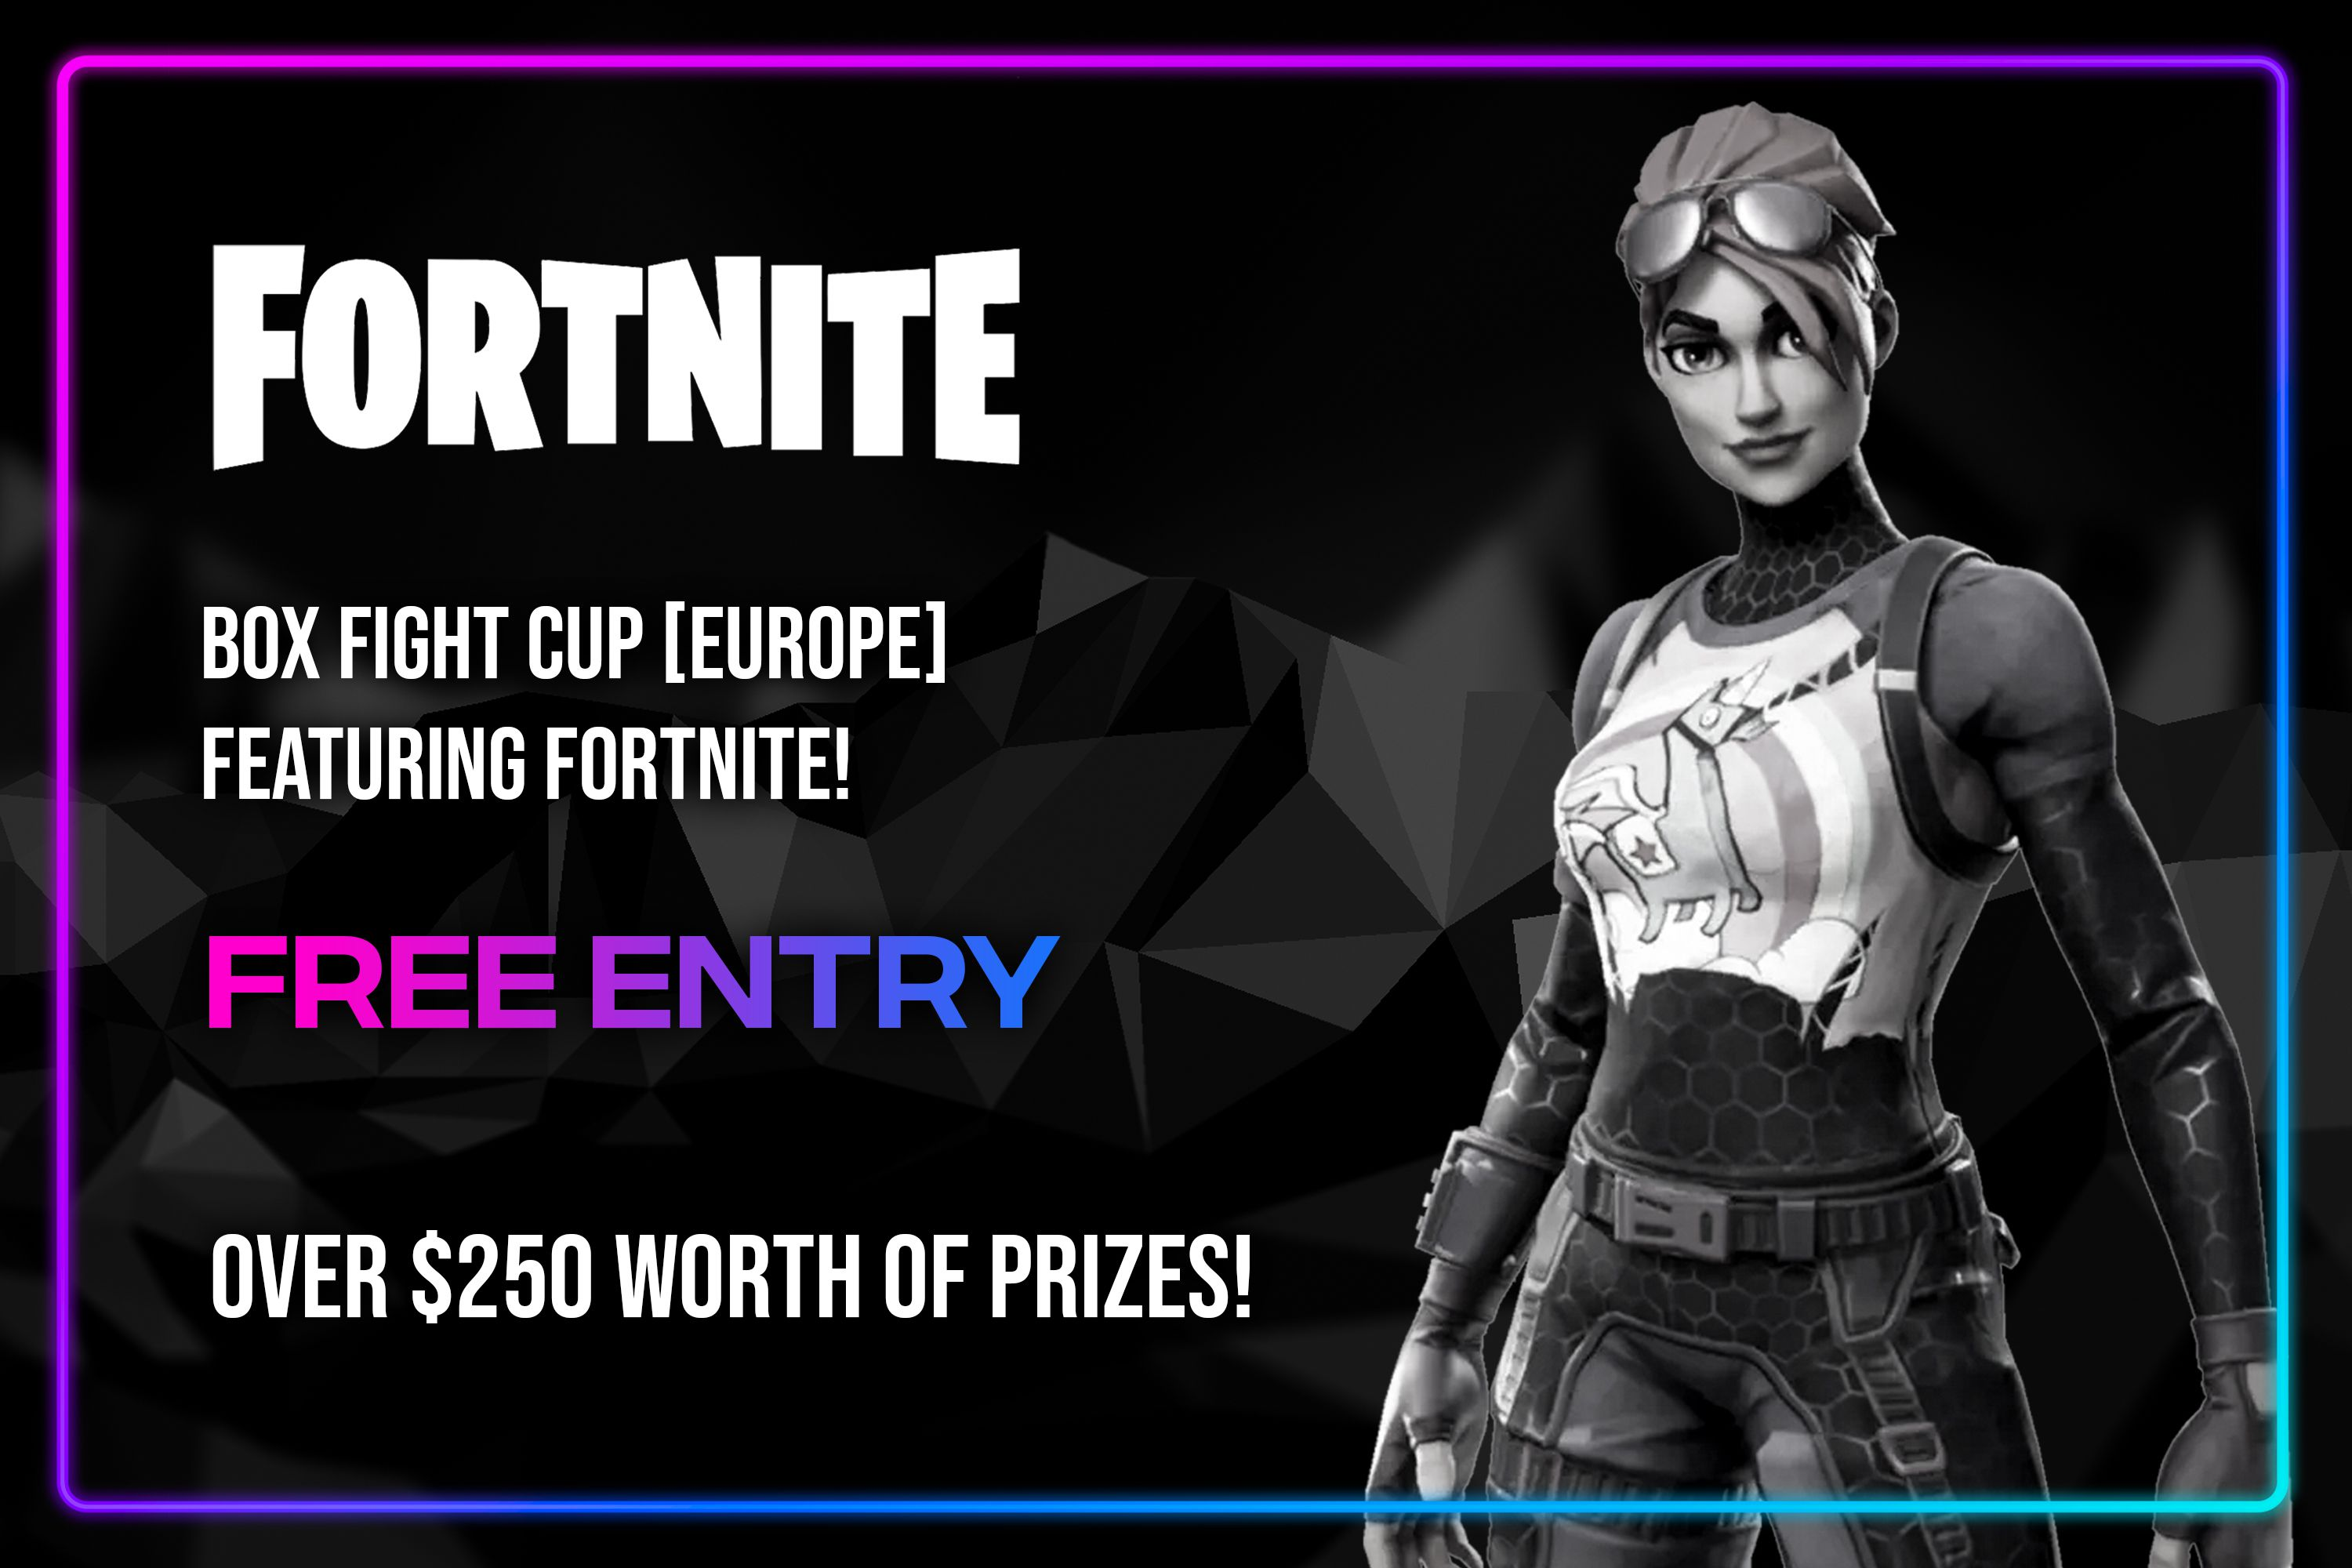 InterMatic Season 1: Box Fight Cup, ft Fortnite [Europe]!